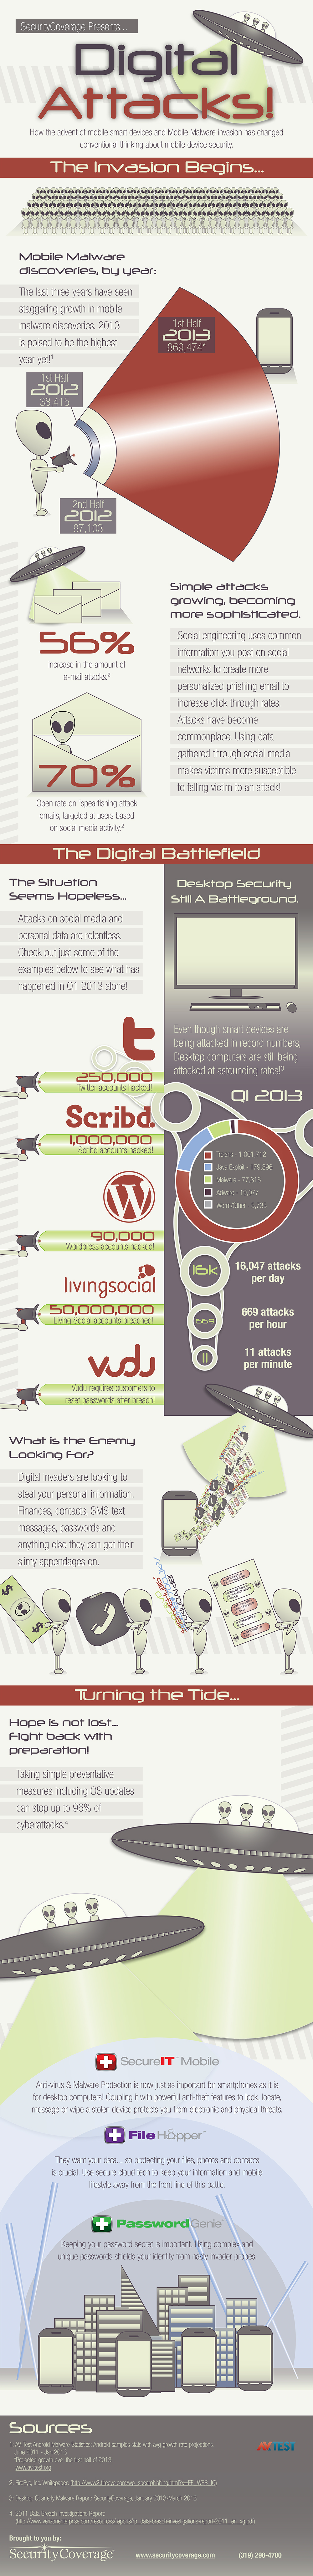 Digital_Attacks_Infographic_SCBranded_Web